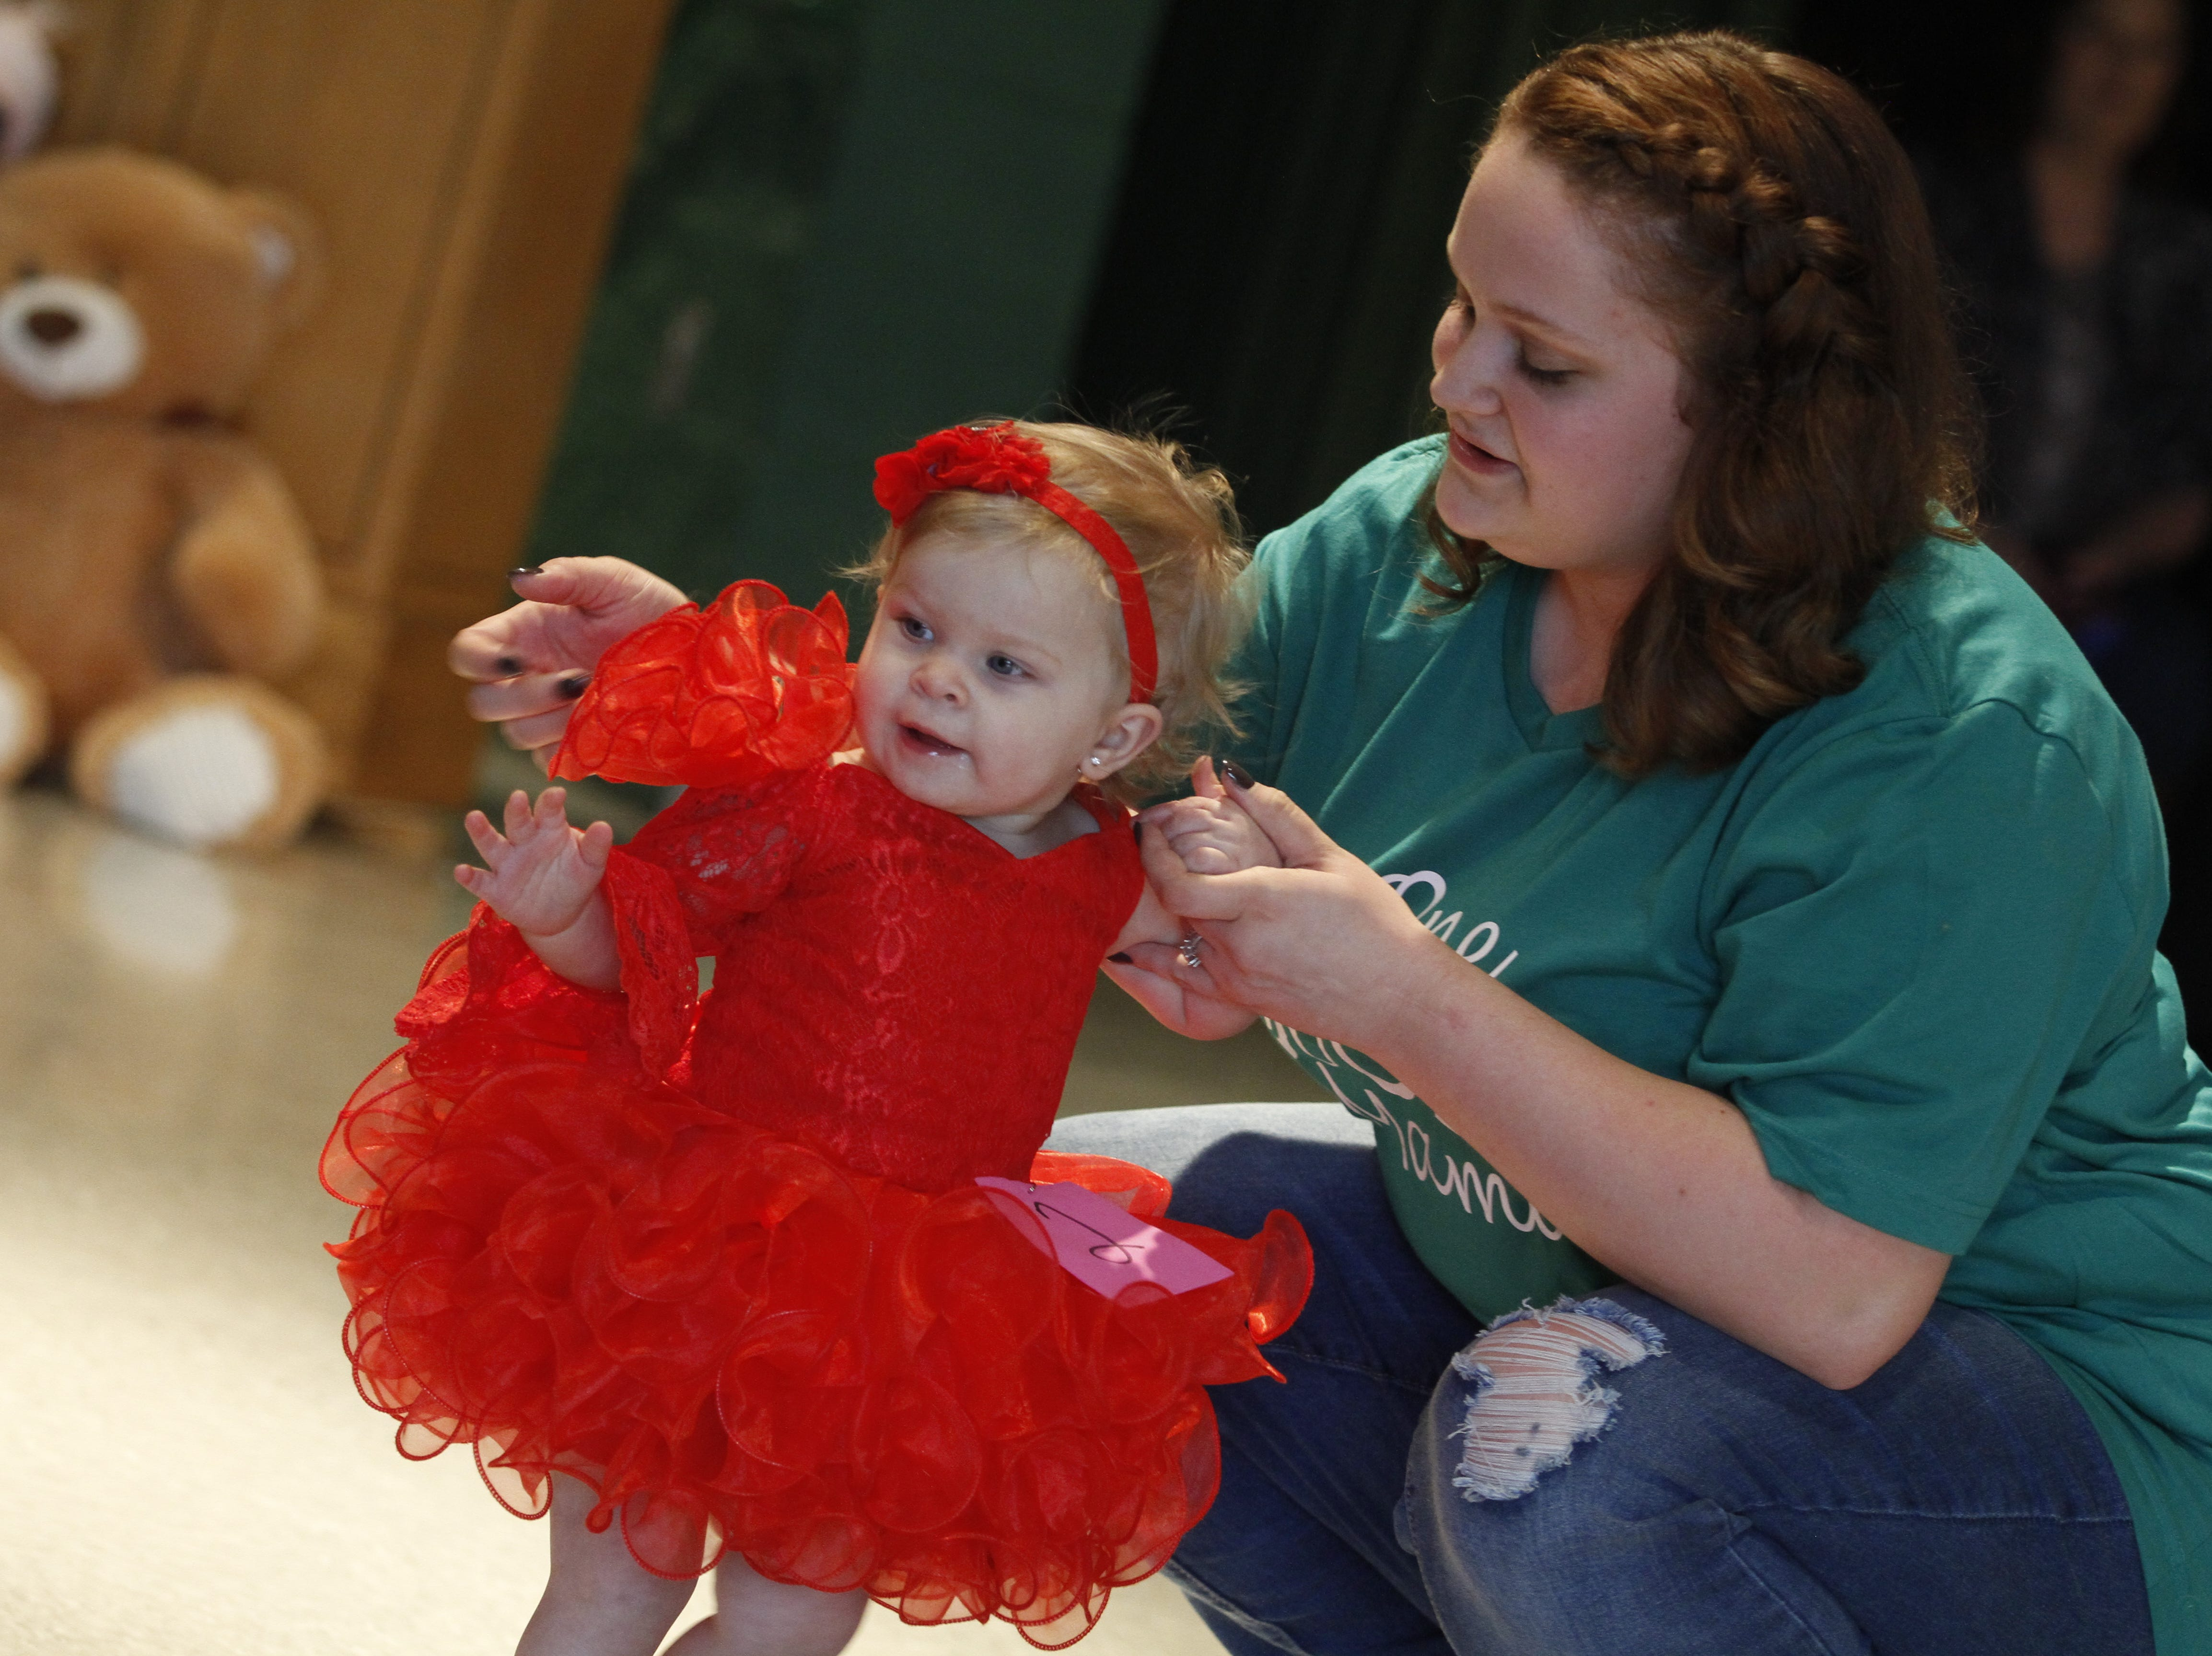 Avalynn Mohon competes at Saturday's Houston County Tiny Princess pageant with help from her mother Kassidy Mohon during the 2019 Houston County Tiny Prince, Tiny Princess Pageant at Houston County High School, on Saturday, March 2, 2019 in Erin, Tenn.